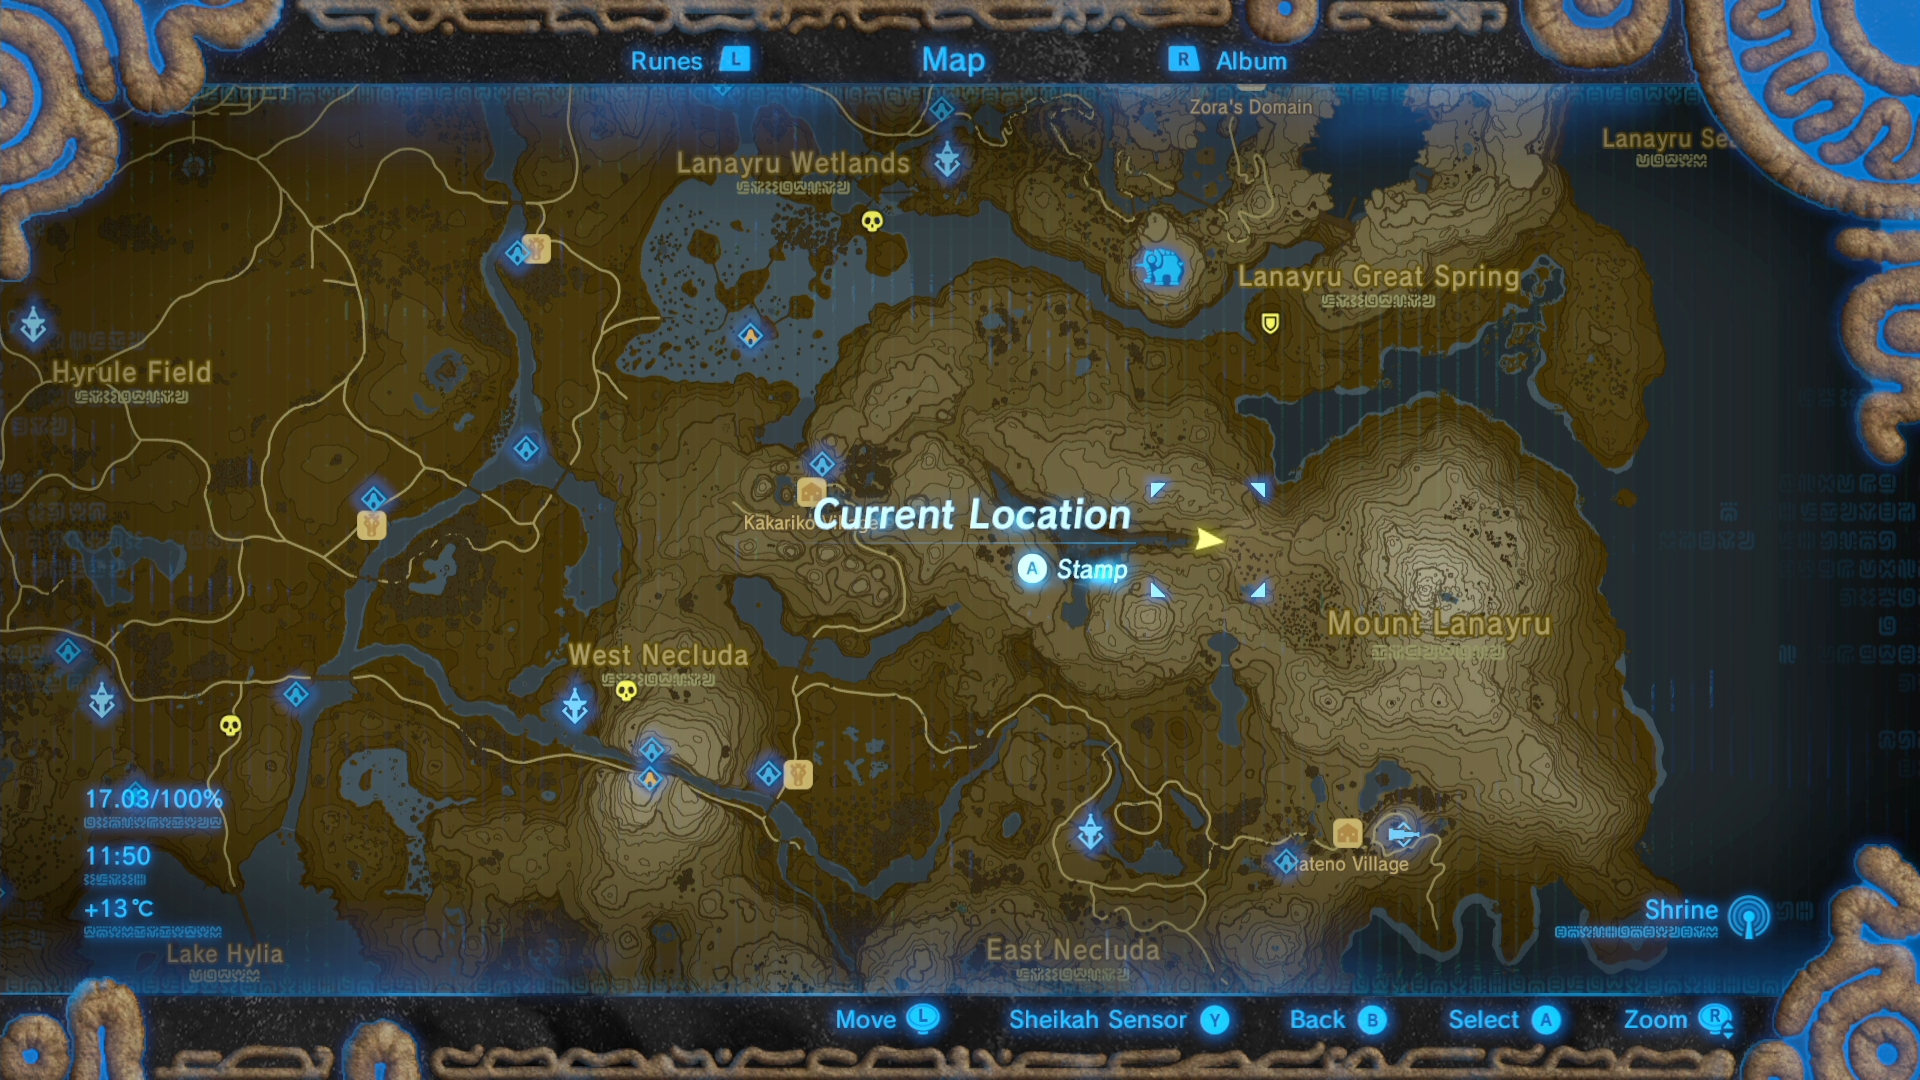 at t tower location map with 5354 The Legend Of Zelda Breath Of The Wild Guide Locked Memories Quest Memory Locations on 5354 The Legend Of Zelda Breath Of The Wild Guide Locked Memories Quest Memory Locations as well Watch further World Map Equator in addition Salarpuria Gardenia Durgapur Kolkata Residential Property Floor together with Download Fortnite Hd Wallpapers.